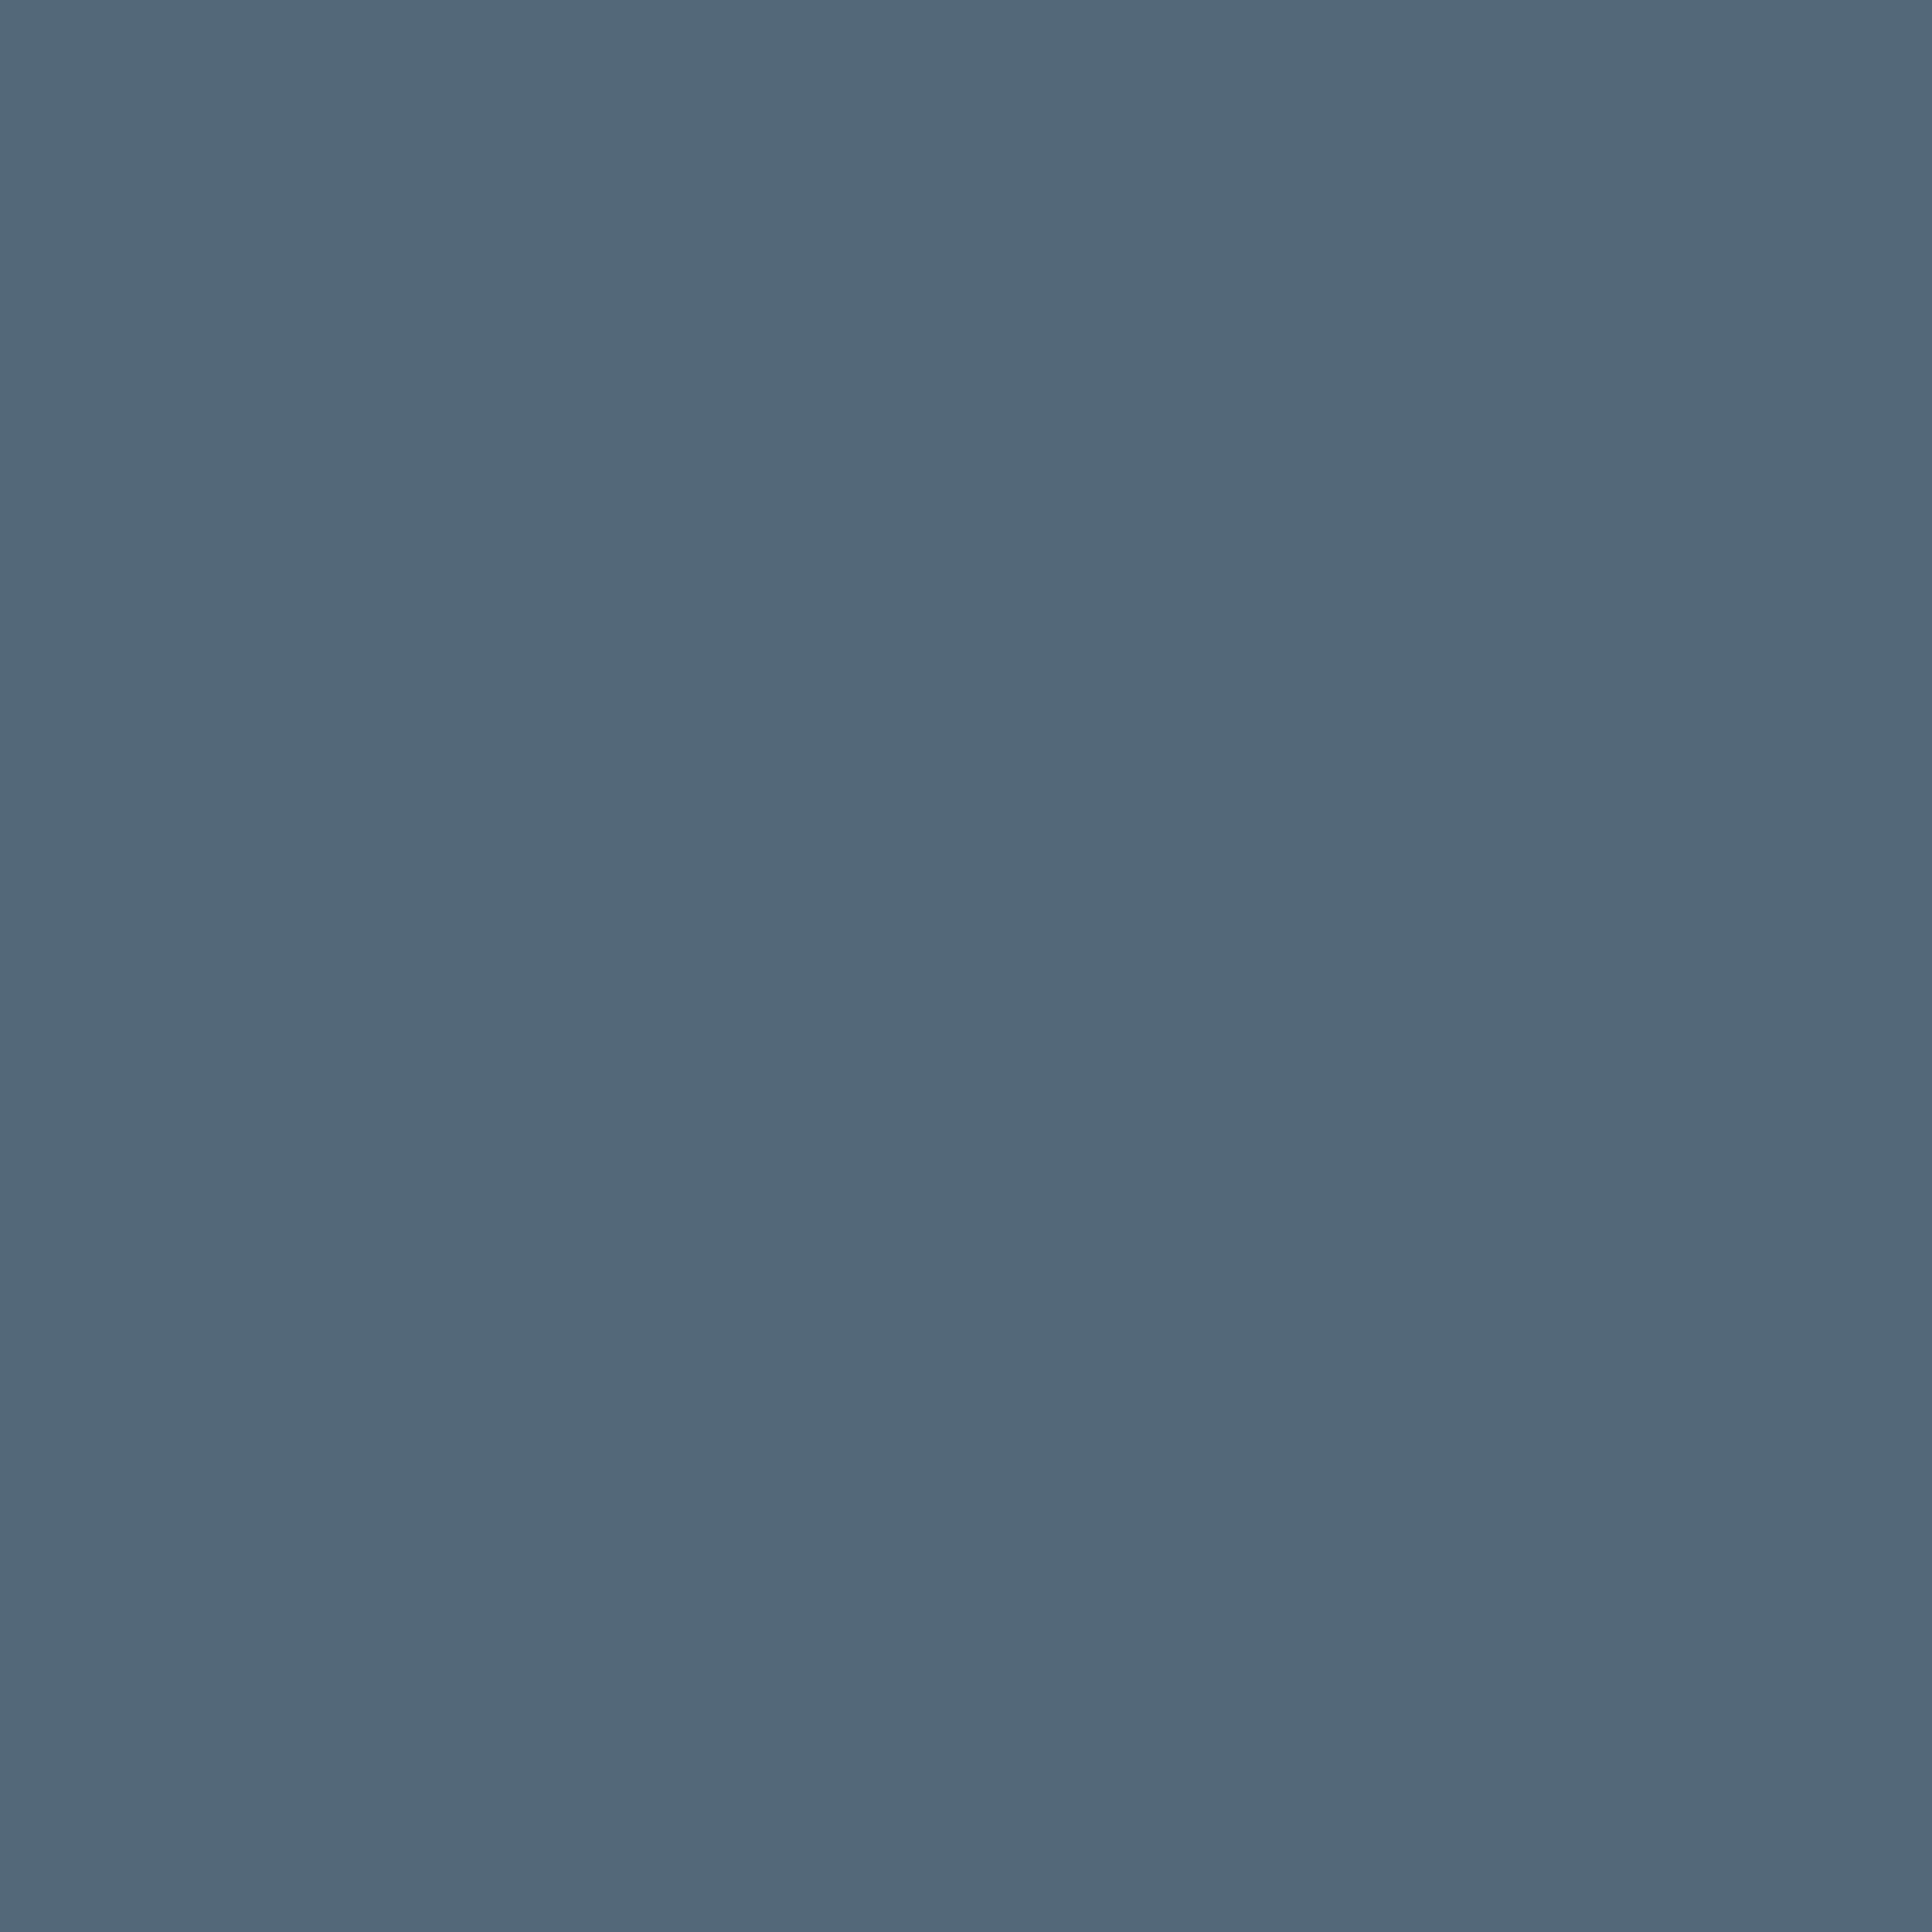 2732x2732 Dark Electric Blue Solid Color Background